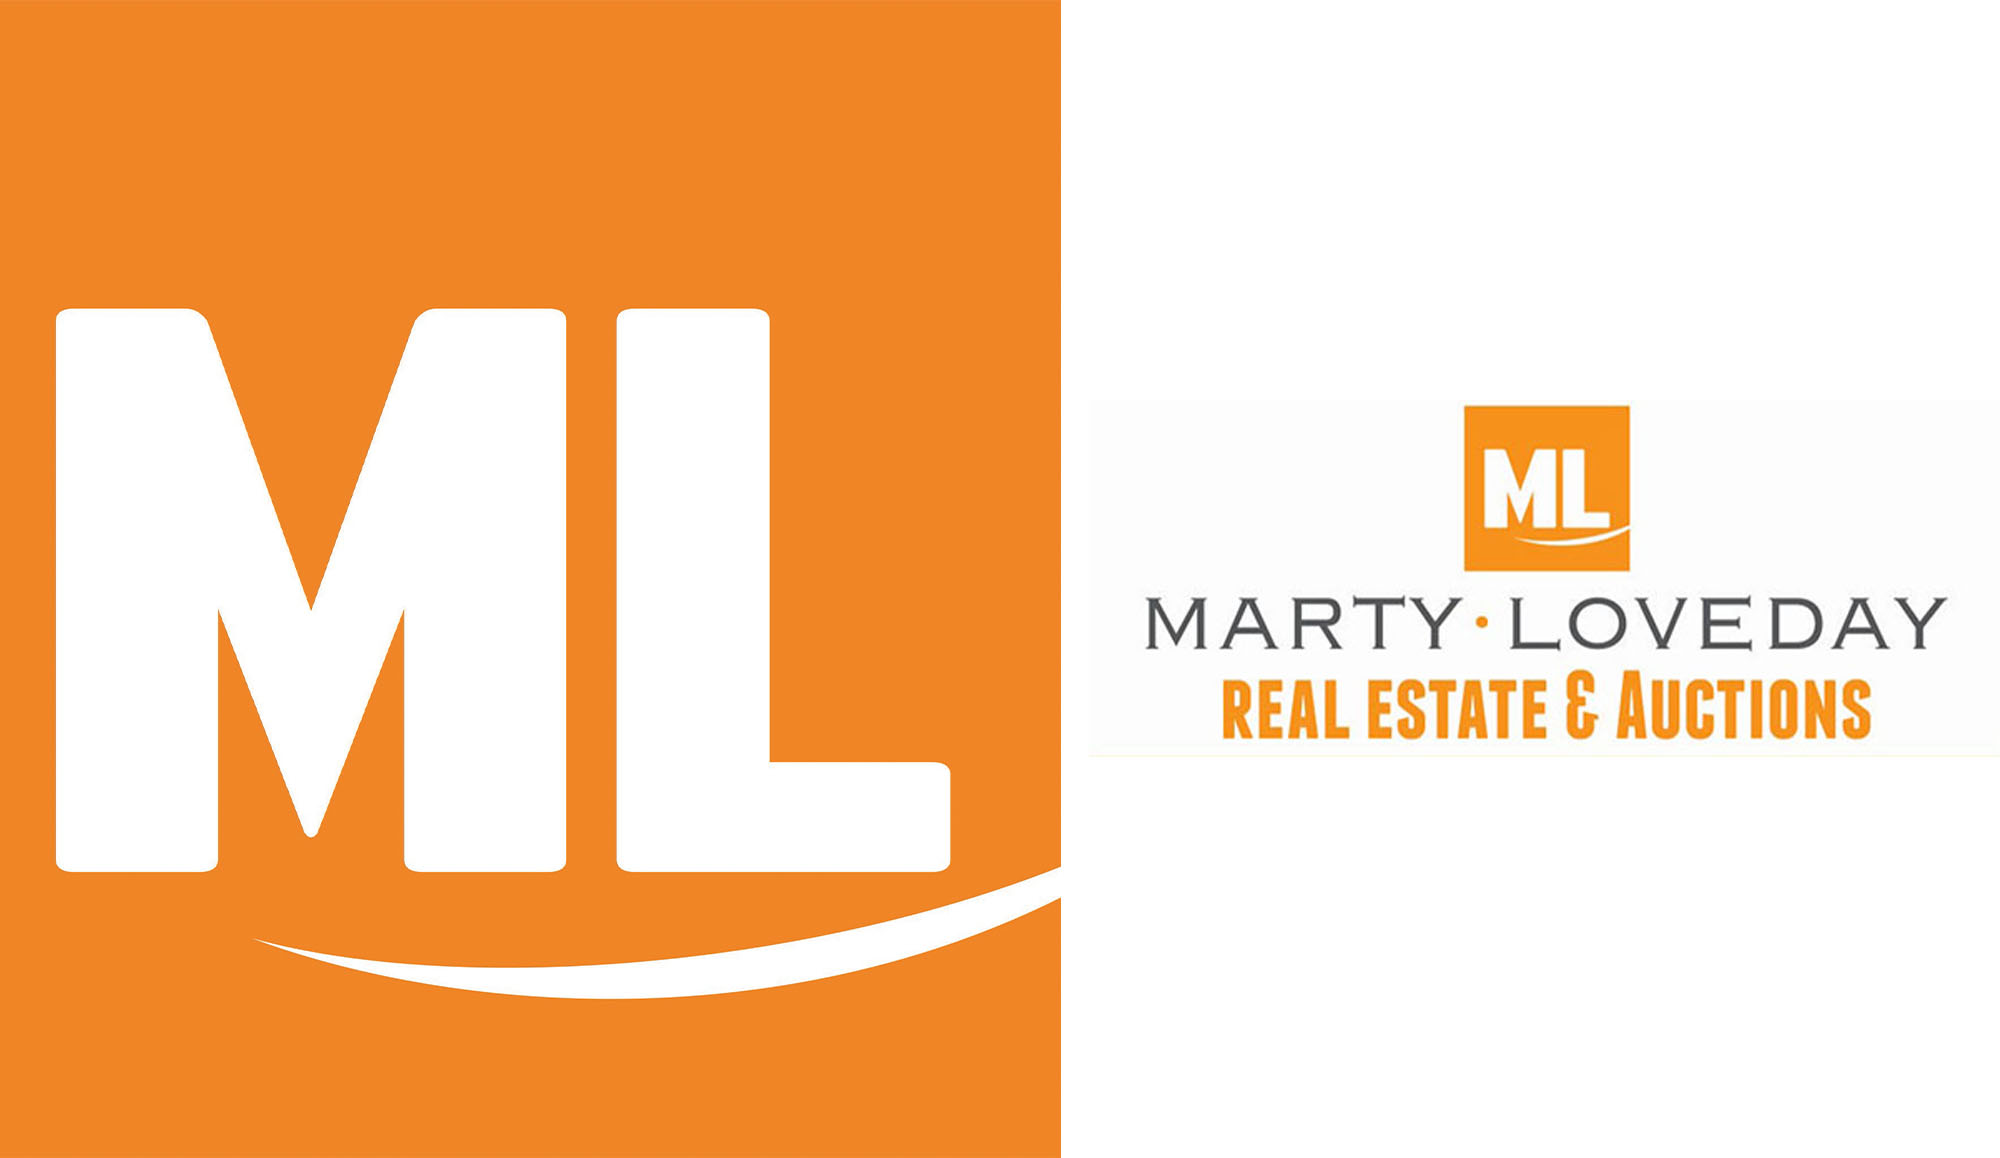 Marty Loveday & Associates